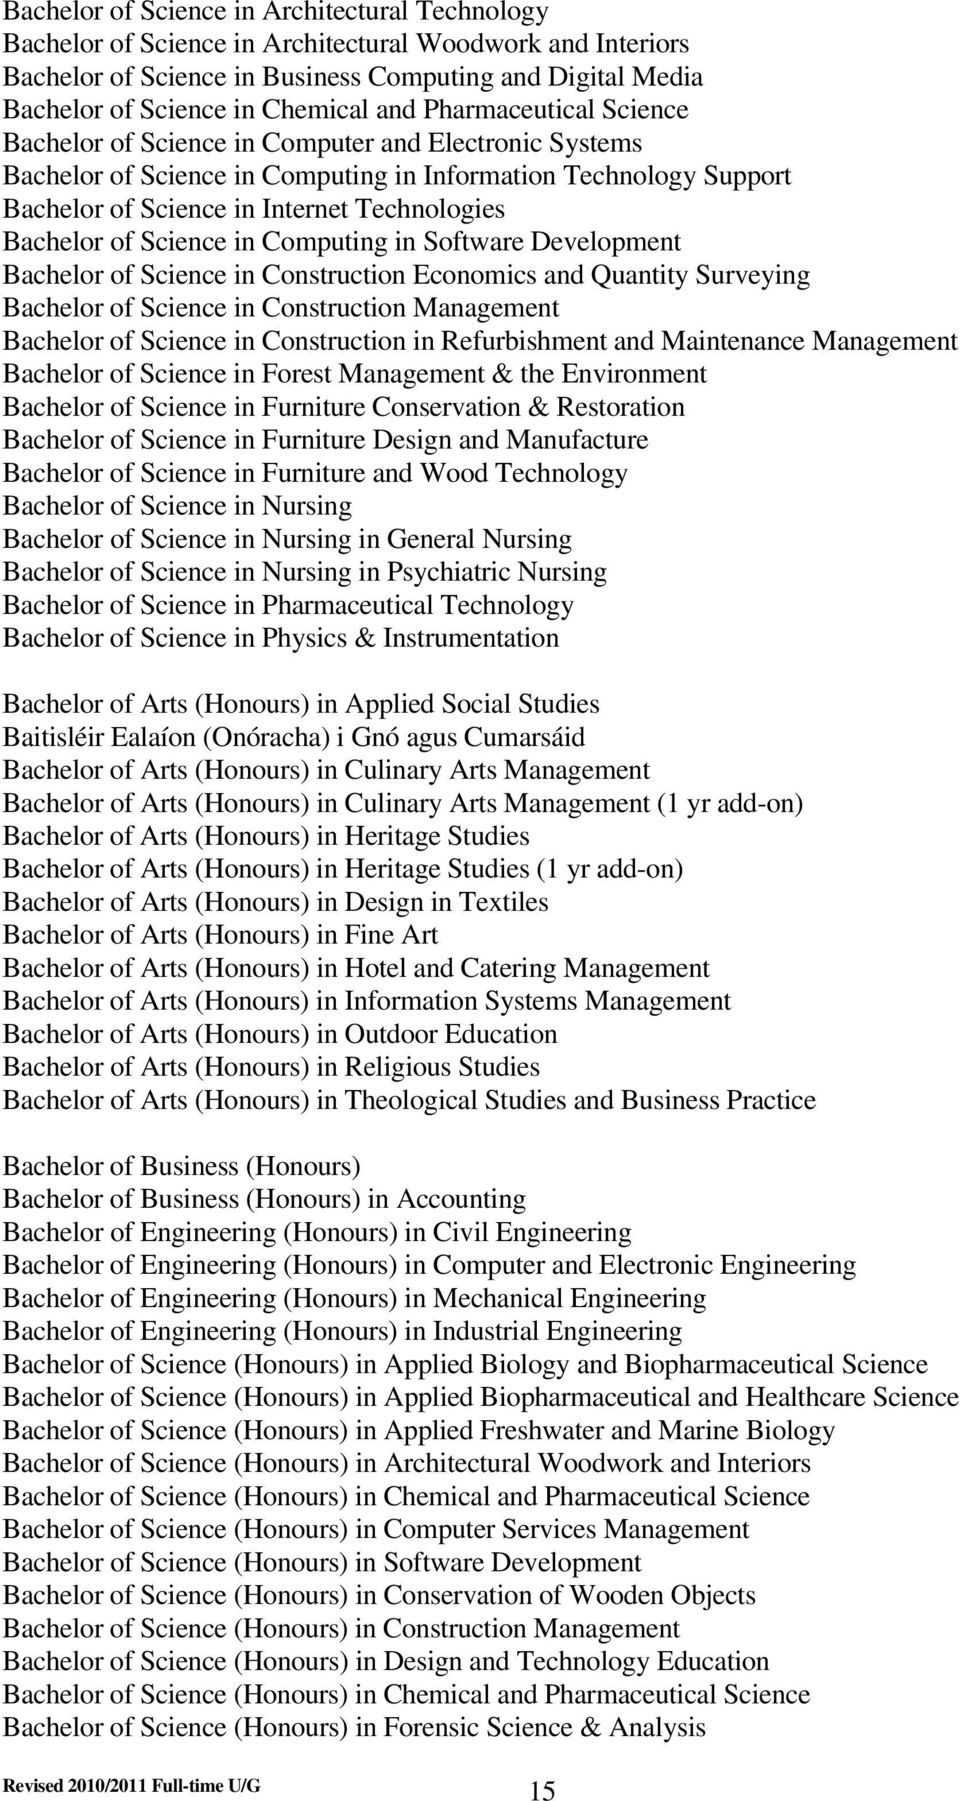 Bachelor of Science in Computing in Software Development Bachelor of Science in Construction Economics and Quantity Surveying Bachelor of Science in Construction Management Bachelor of Science in